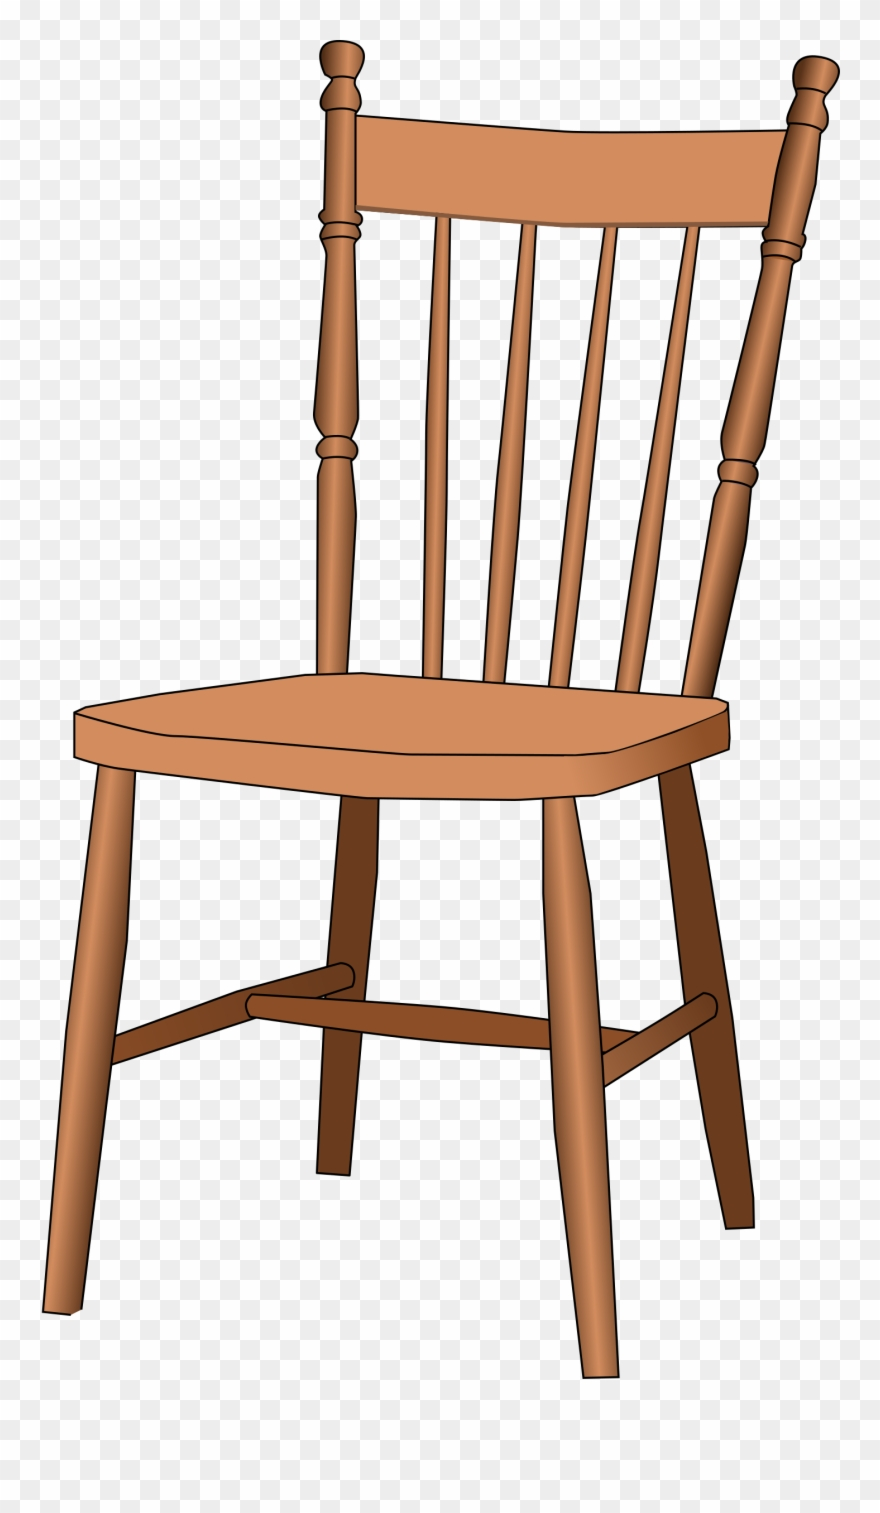 Armchair Clipart Wooden Furniture.